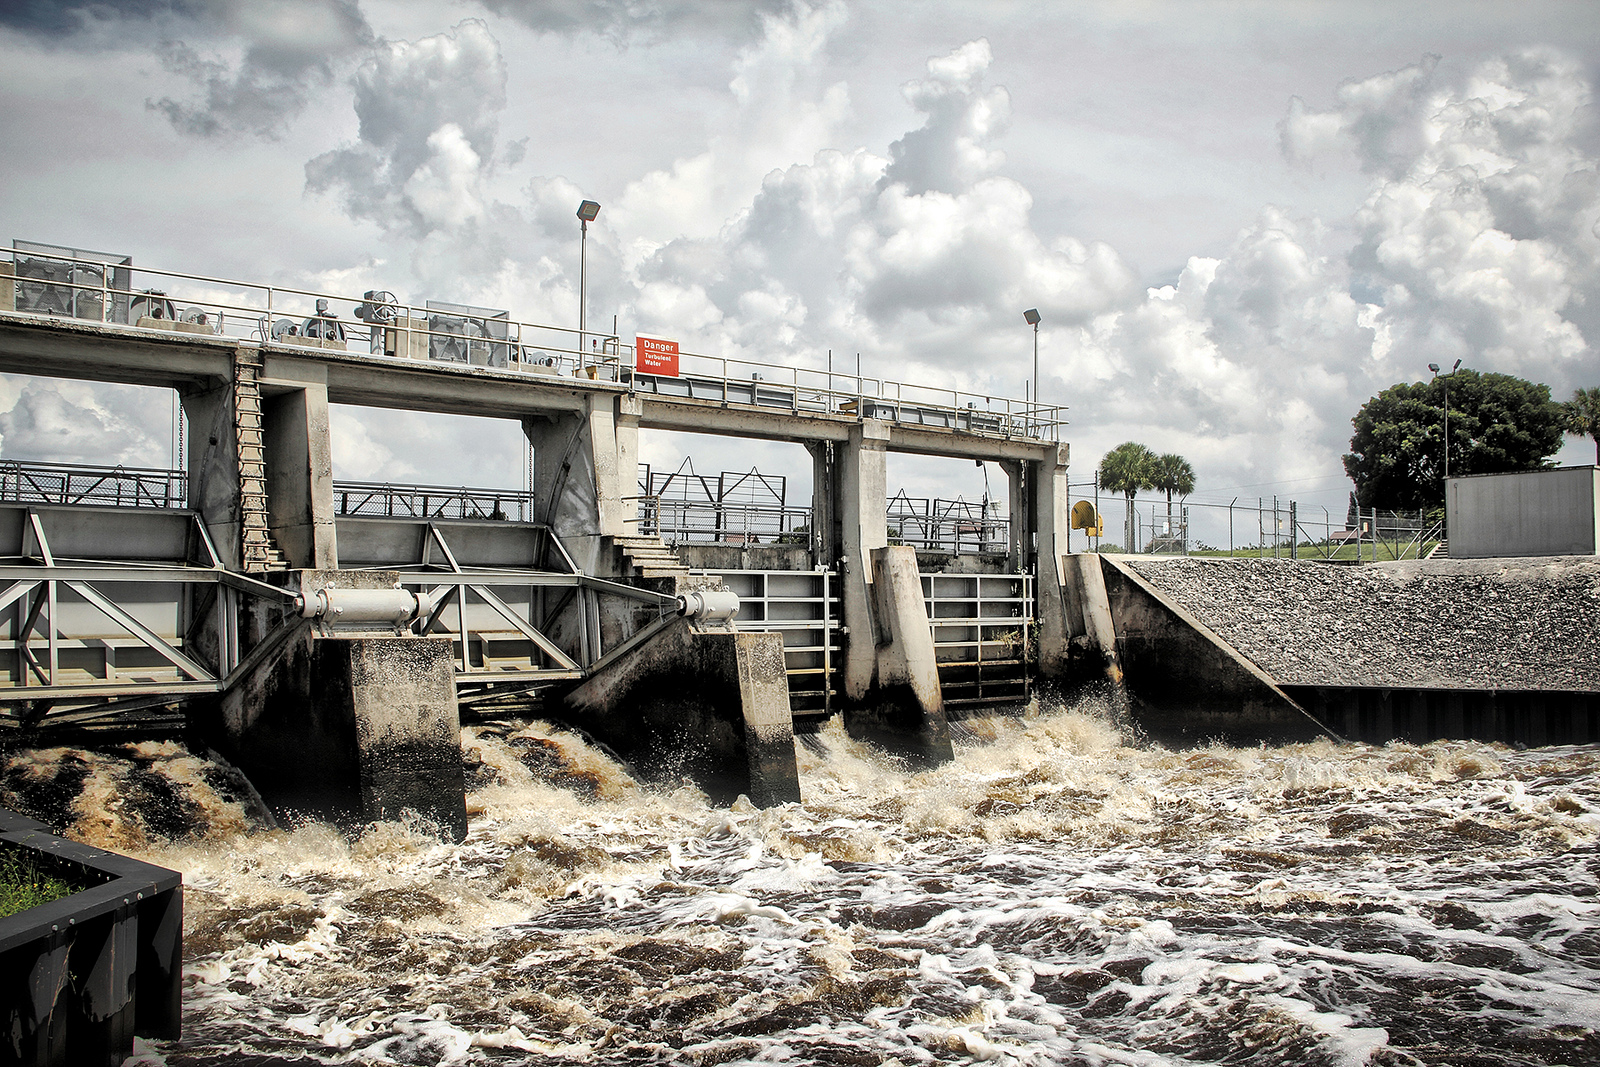 Nutrient-rich water pollutes the Caloosahatchee River in the Summer of 2013, prompting frustration in the area. (Photo by Dale, via Creative Commons)